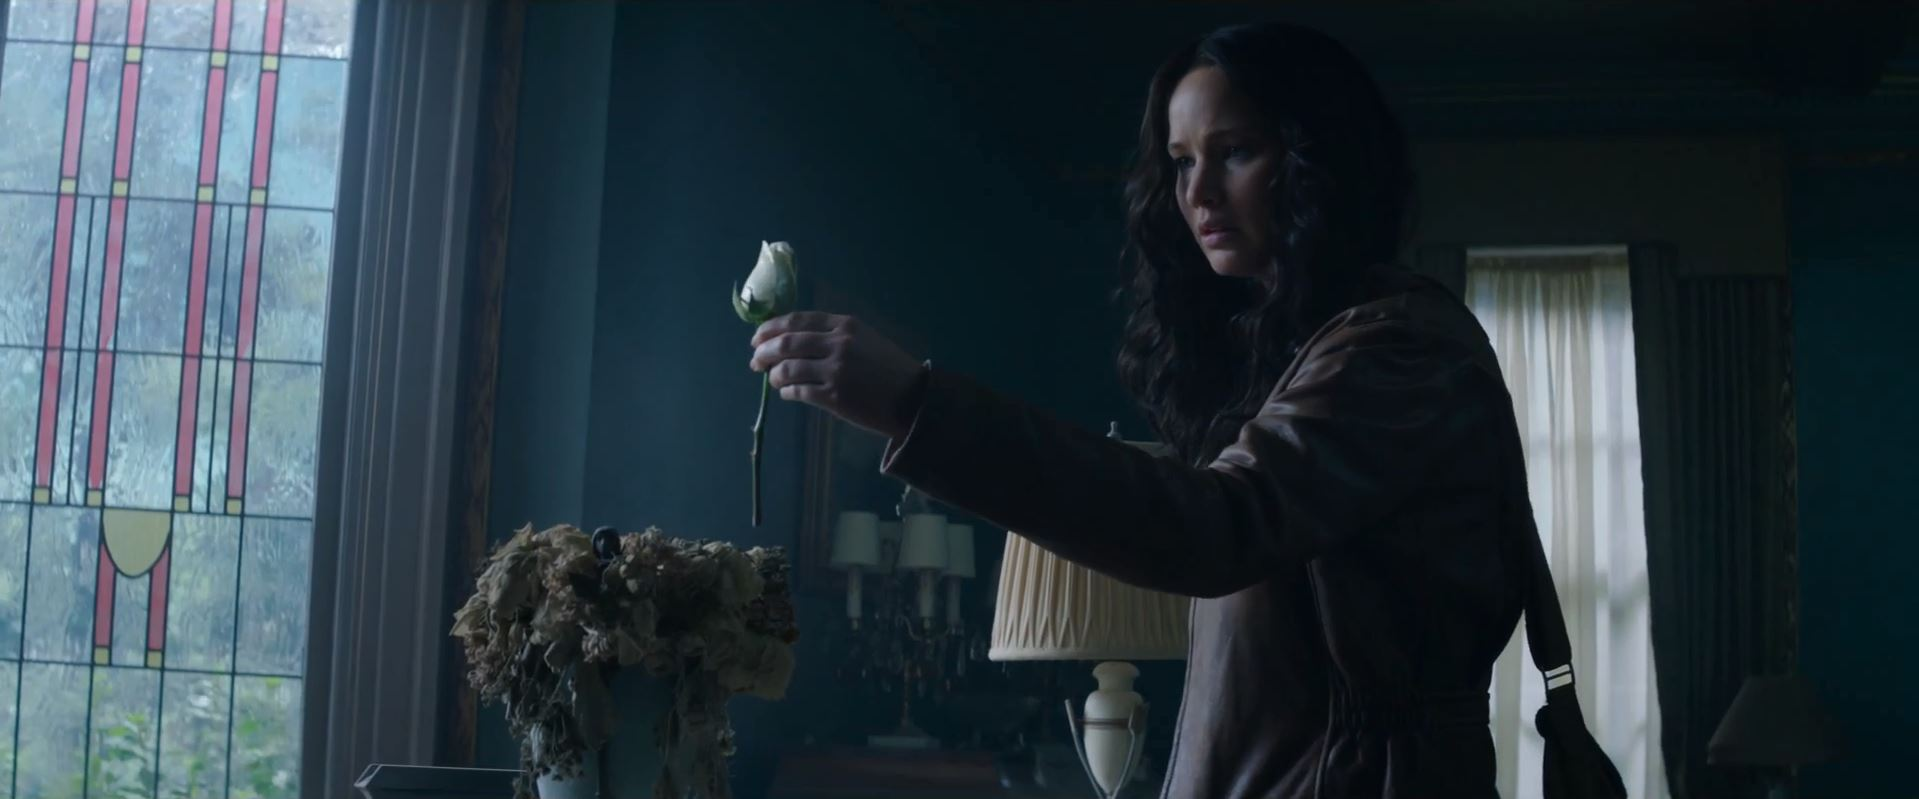 The Hunger Games Mockingjay Part 1 Trailer - Jennifer Lawrence as Katniss Everdeen